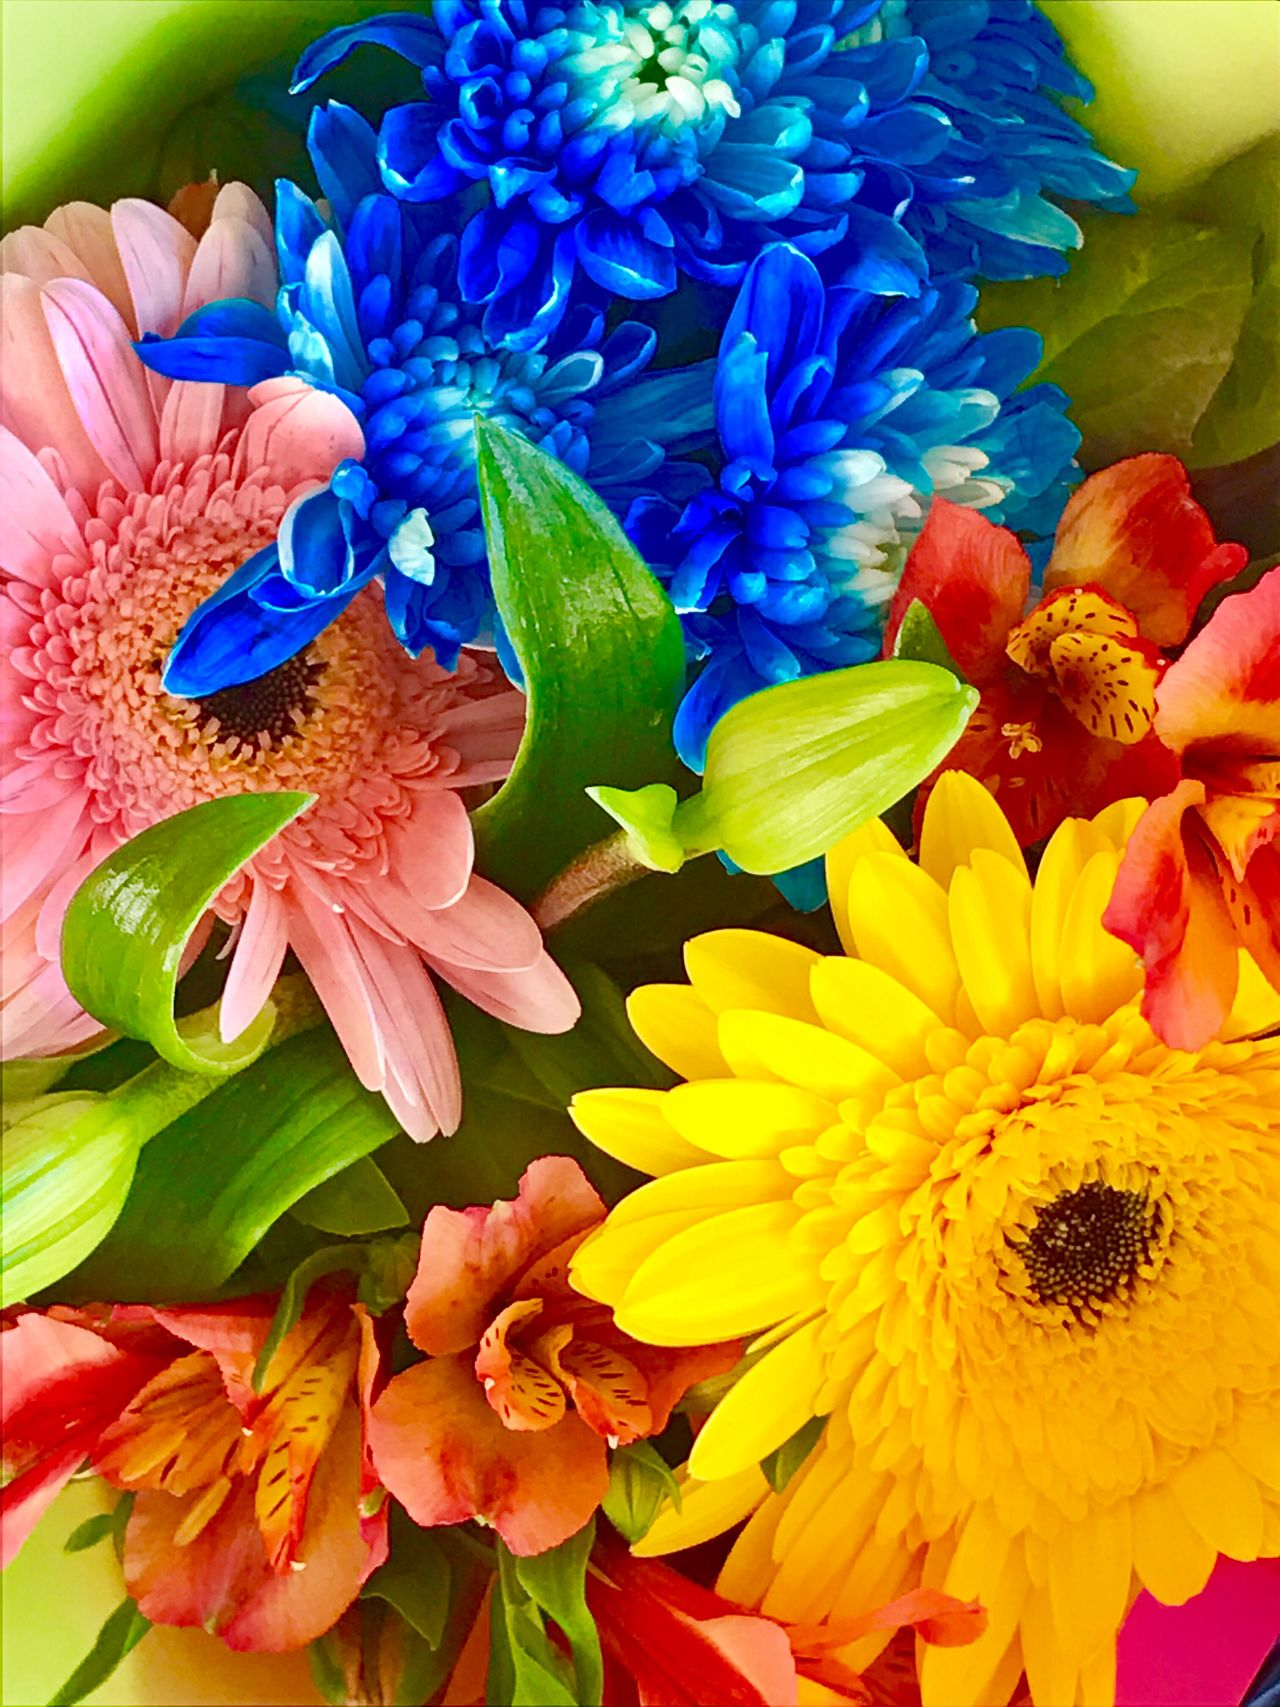 Flower Petal Fragility Flower Head Close-up Day No People Outdoors Lights And Shadows Focus On Foreground Freshness Beauty In Nature Illuminated Sunlight City Green Color Pink Color Red Colour Blue Colour Yellow Colour Multi Colored Backgrounds Pollen Blooming Morning